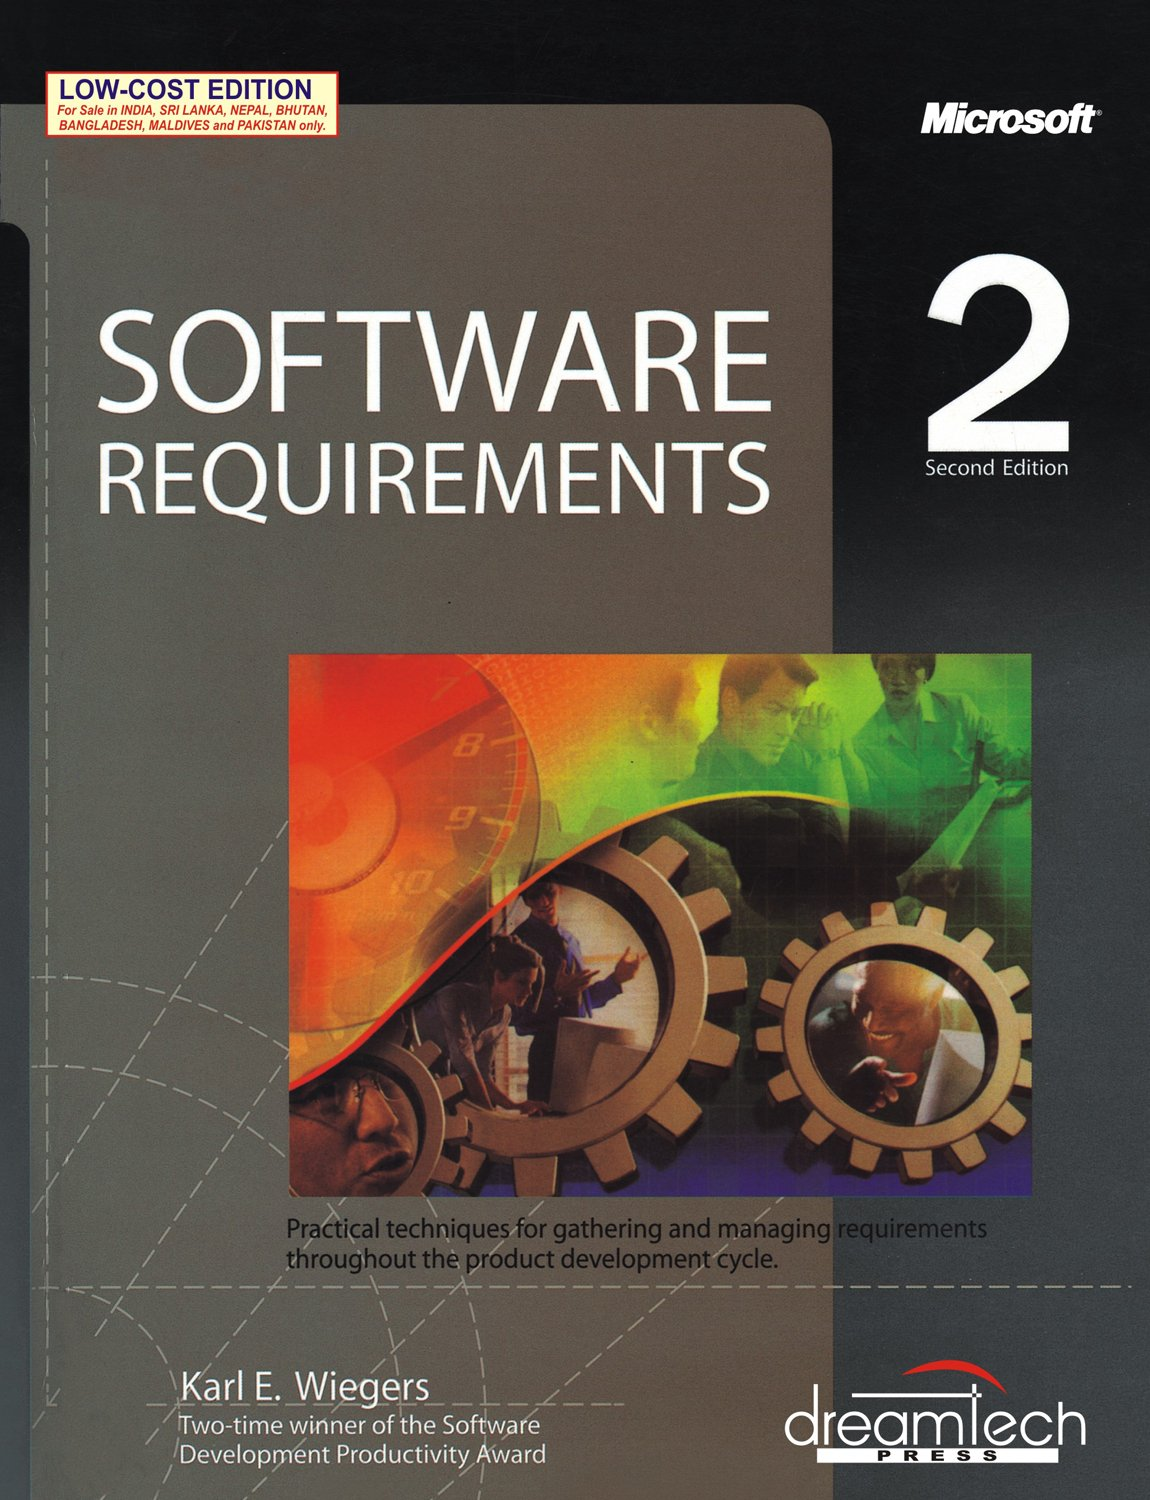 9780735618794: software requirements 2 abebooks karl wiegers.